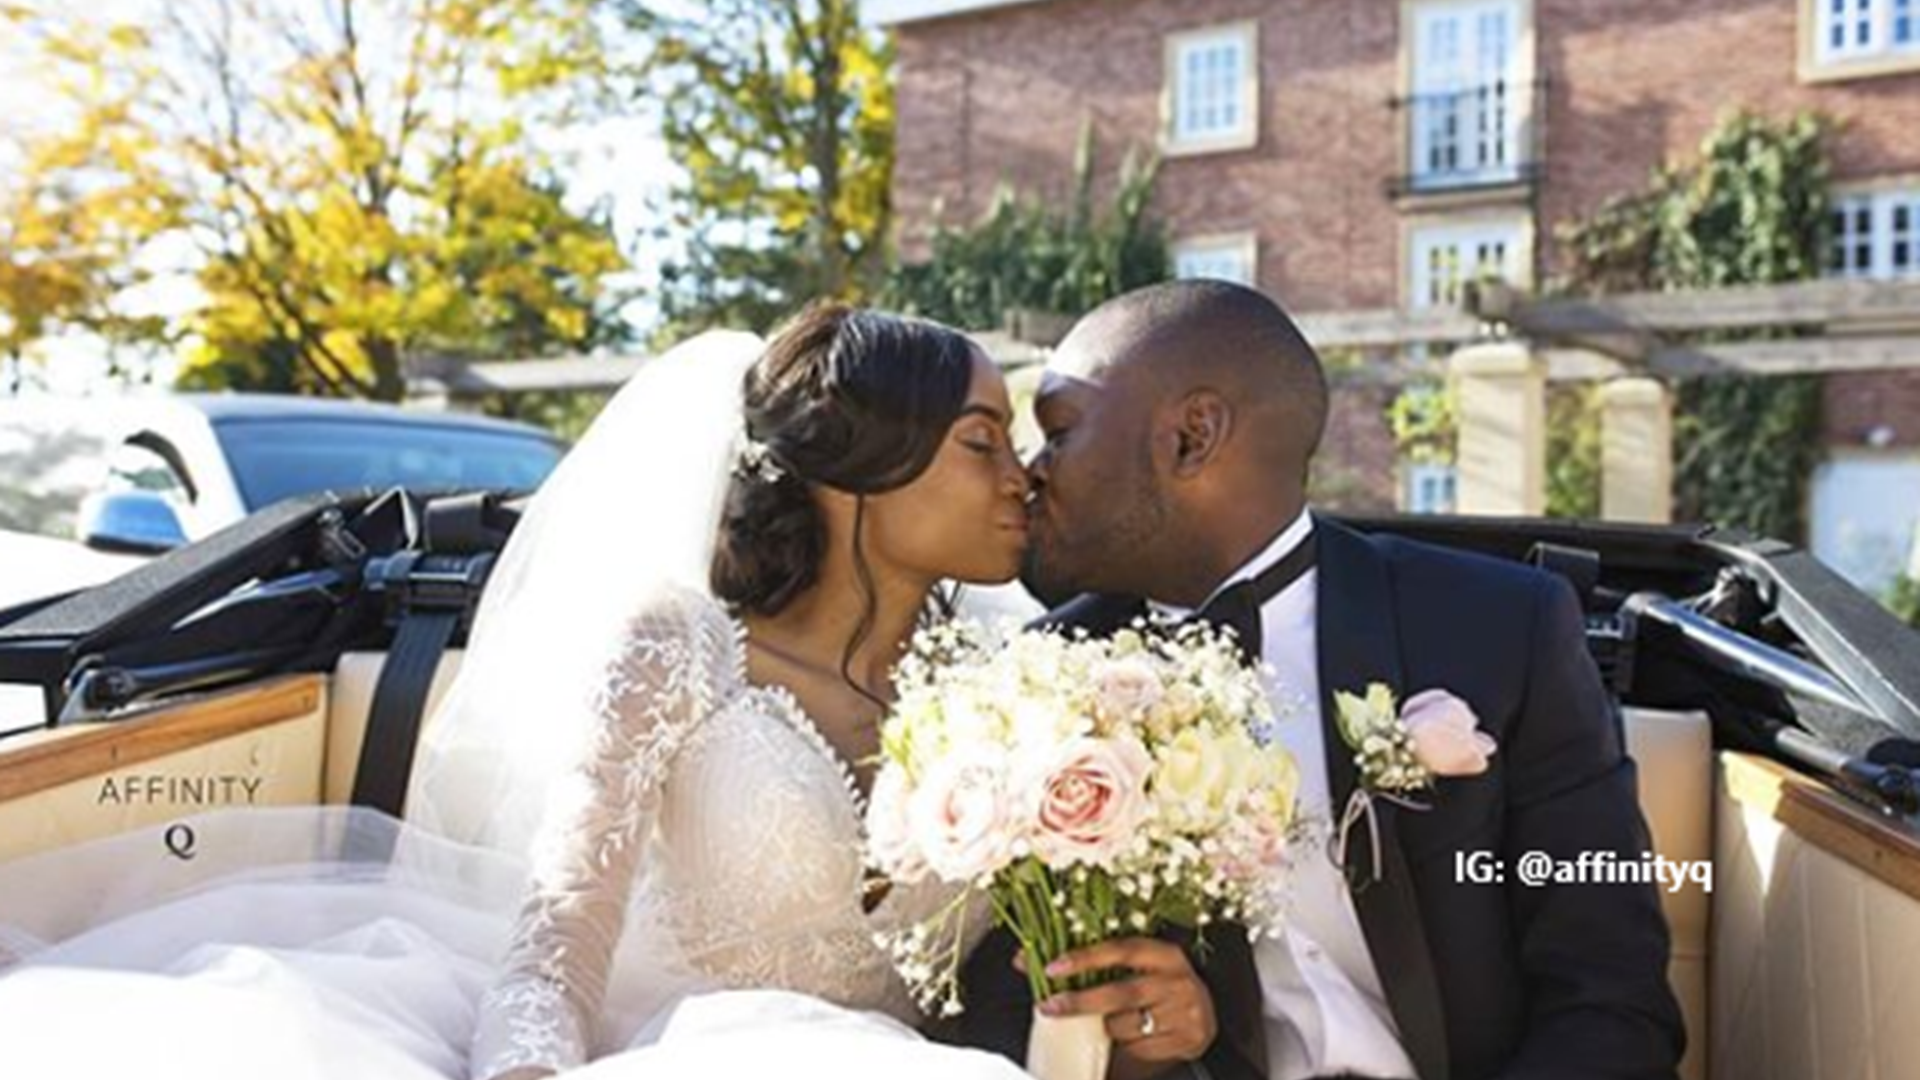 Newly married black couple sitting kissing in the back of traditional wedding car at the Belfry Hotel